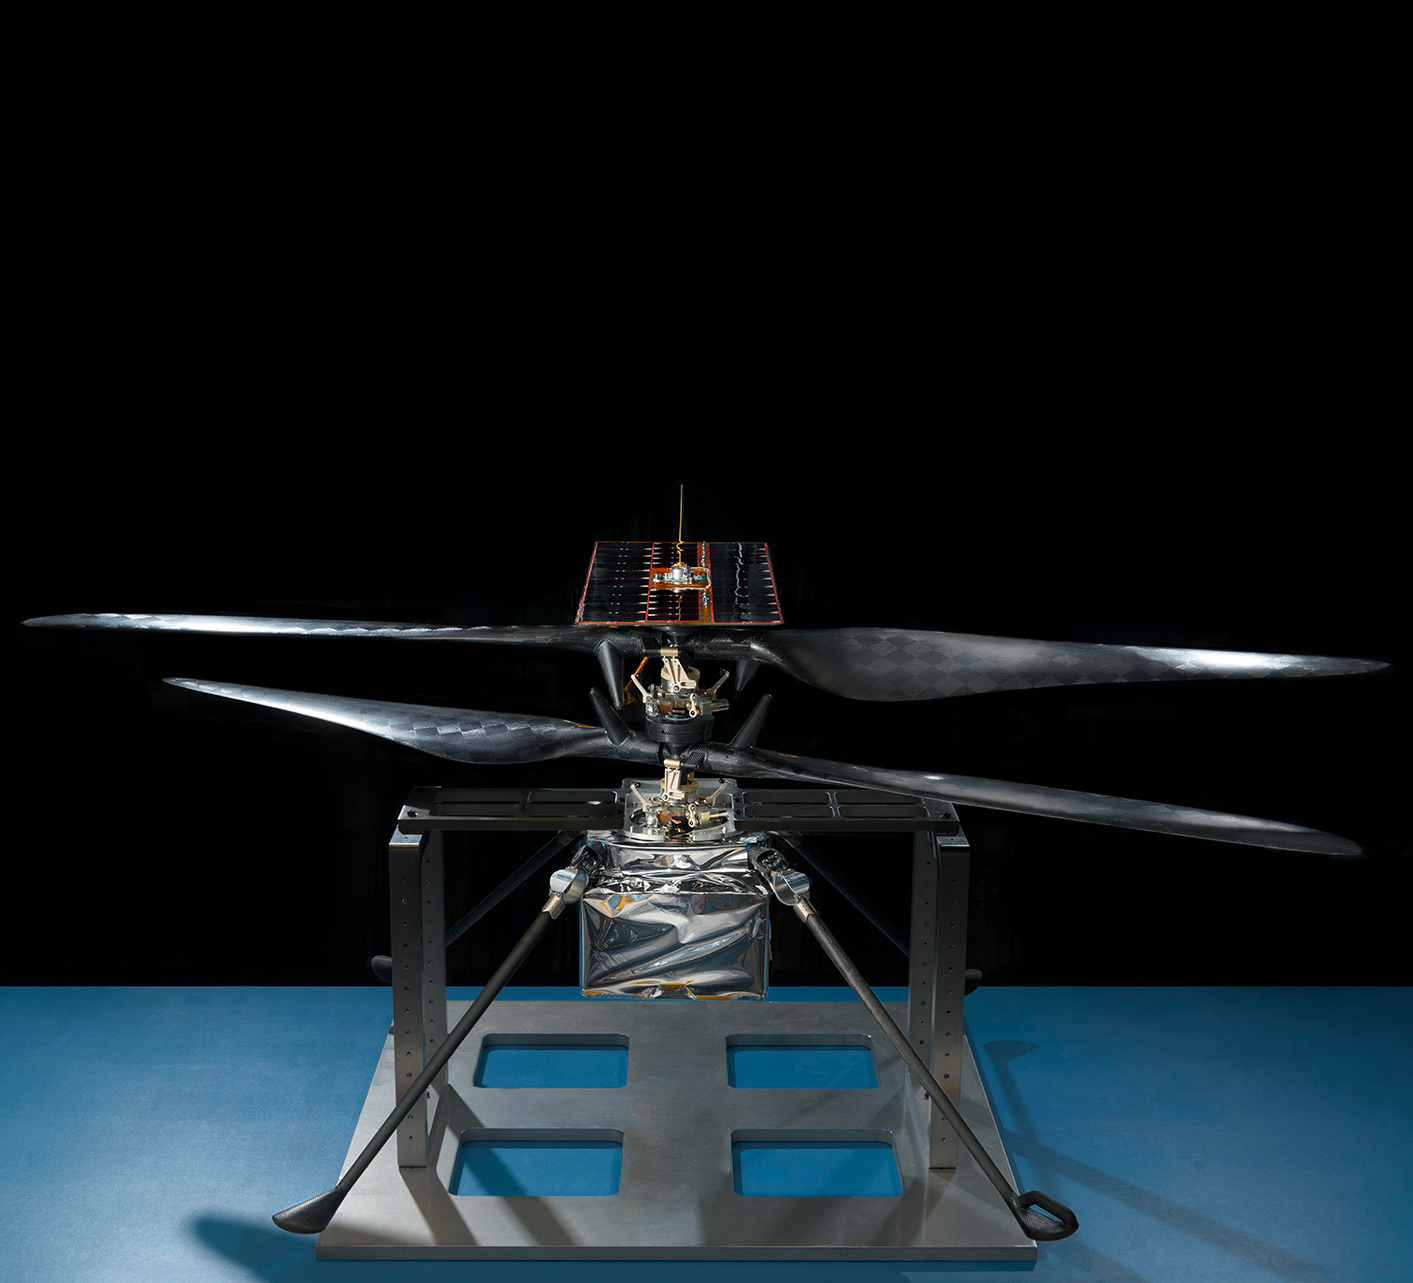 NASA JPL Mars Helicopter Scout